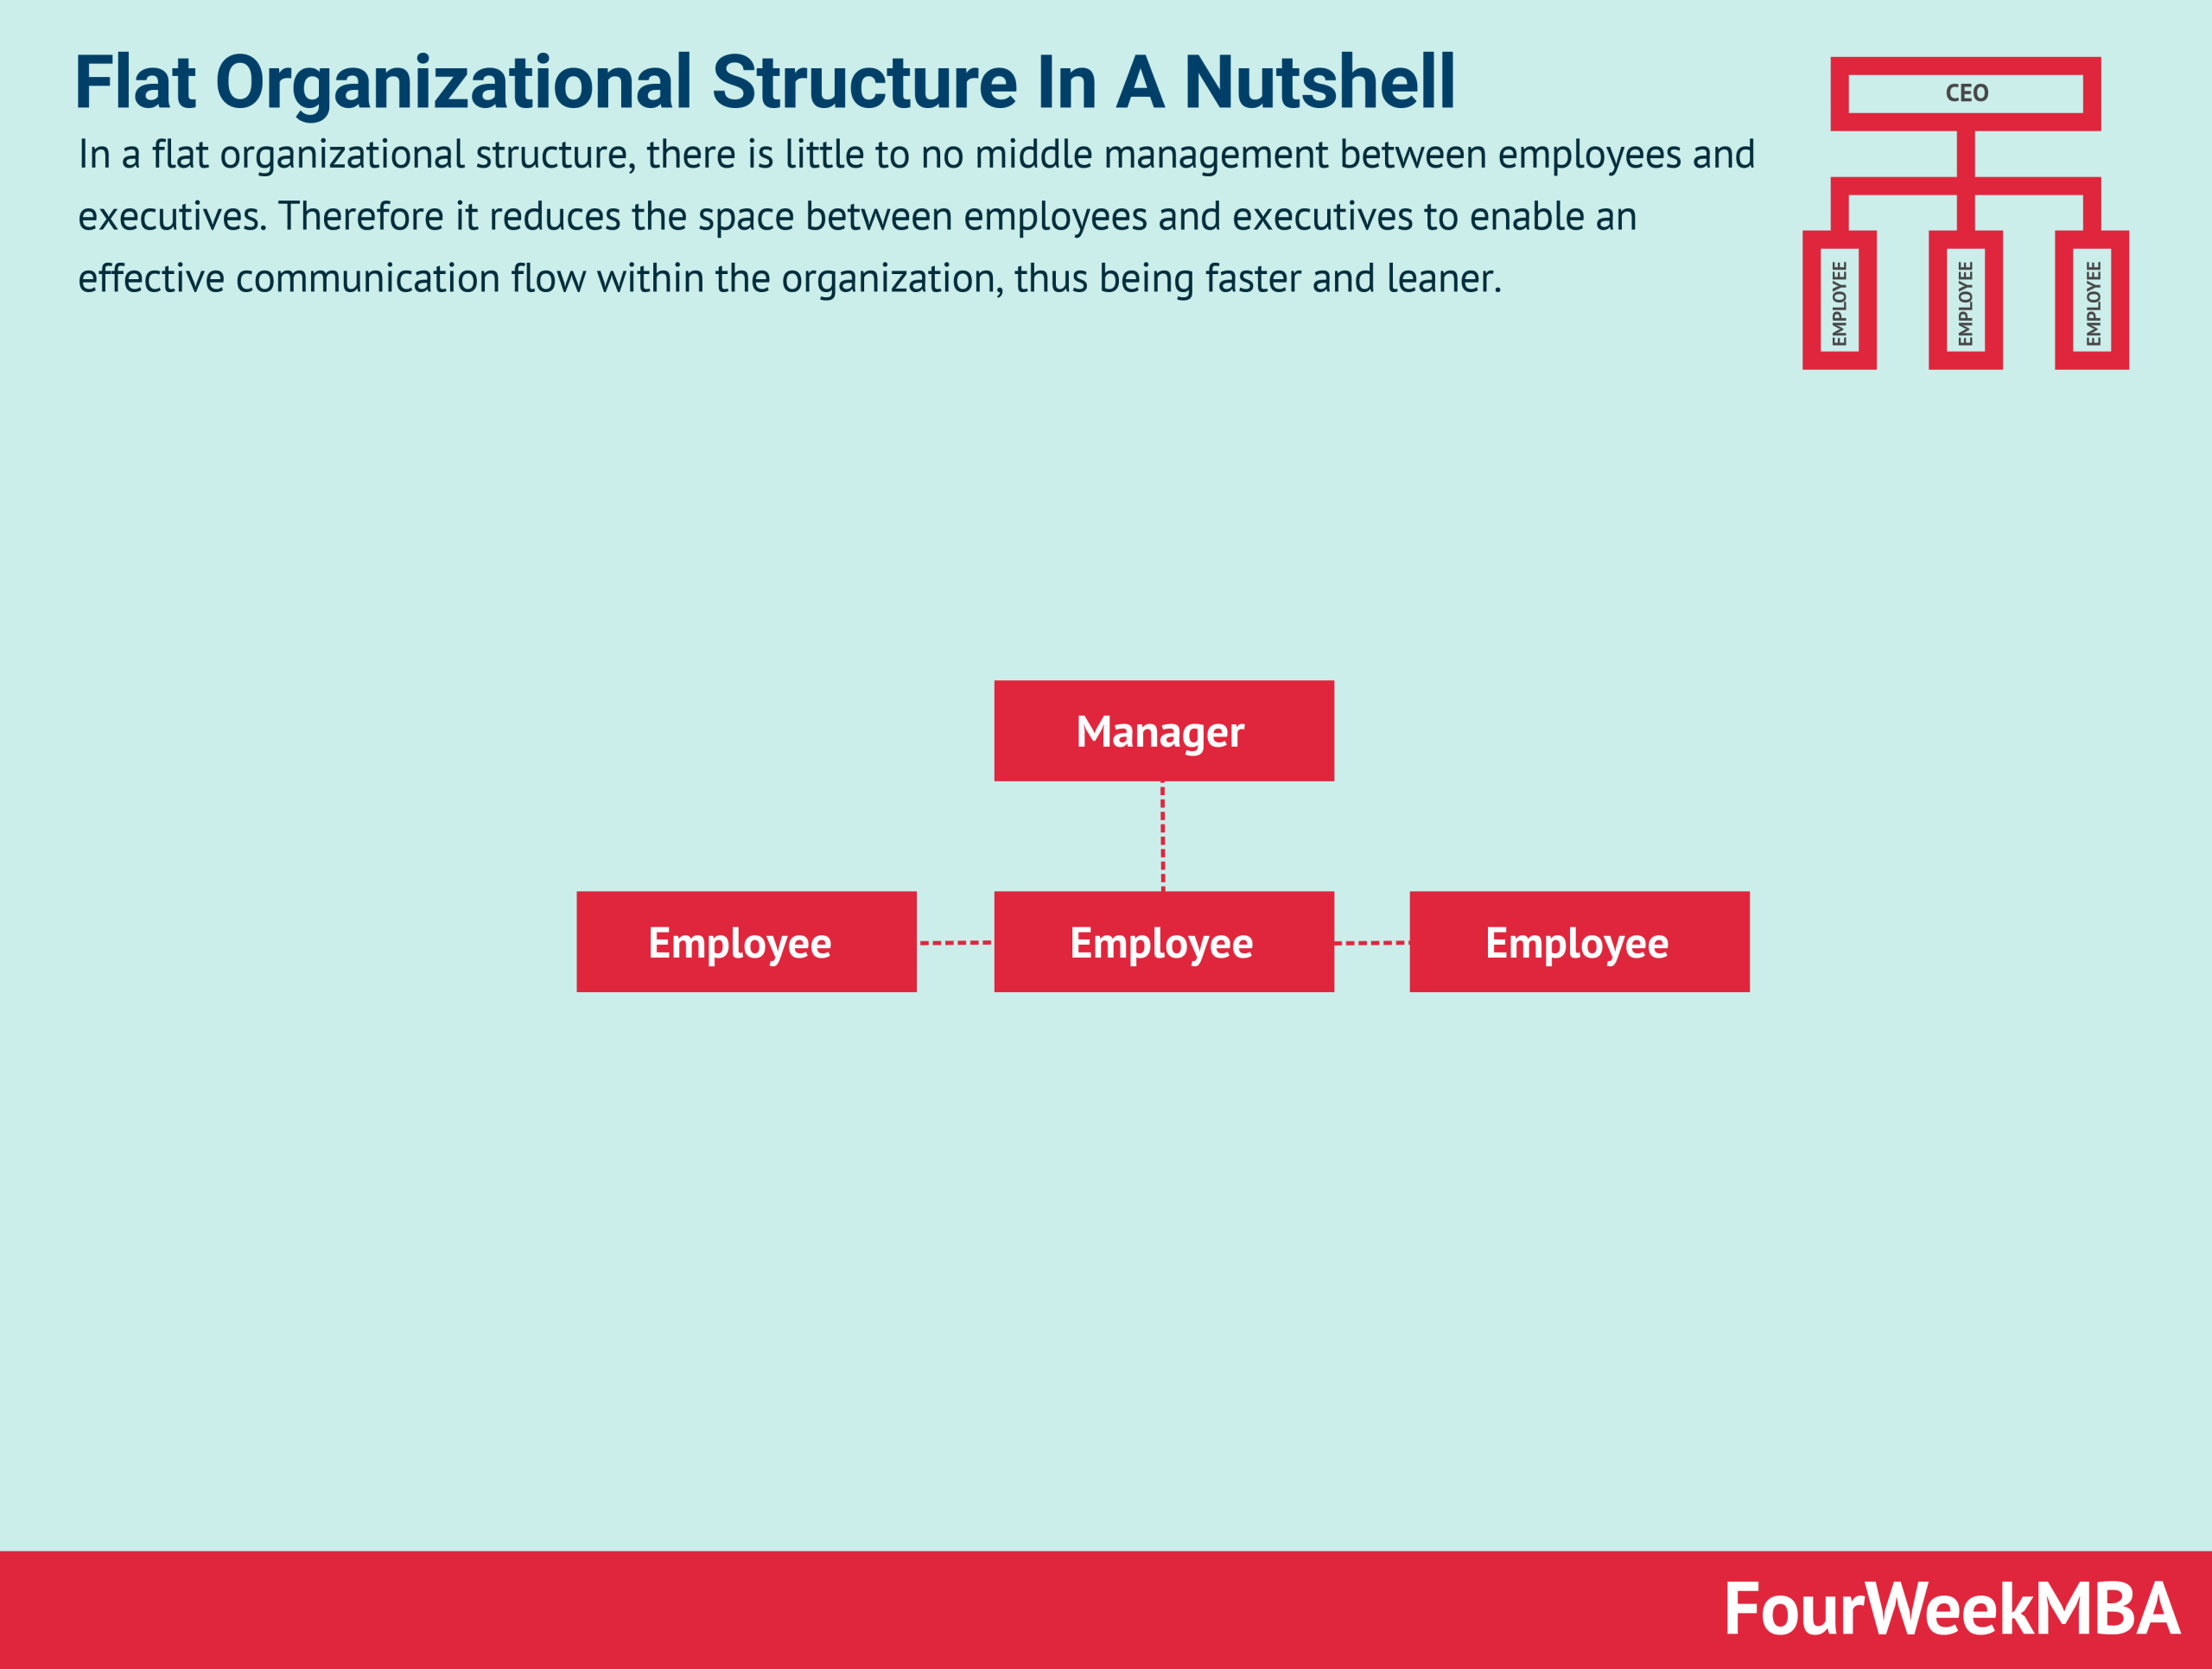 Flat Organizational Structure In A Nutshell